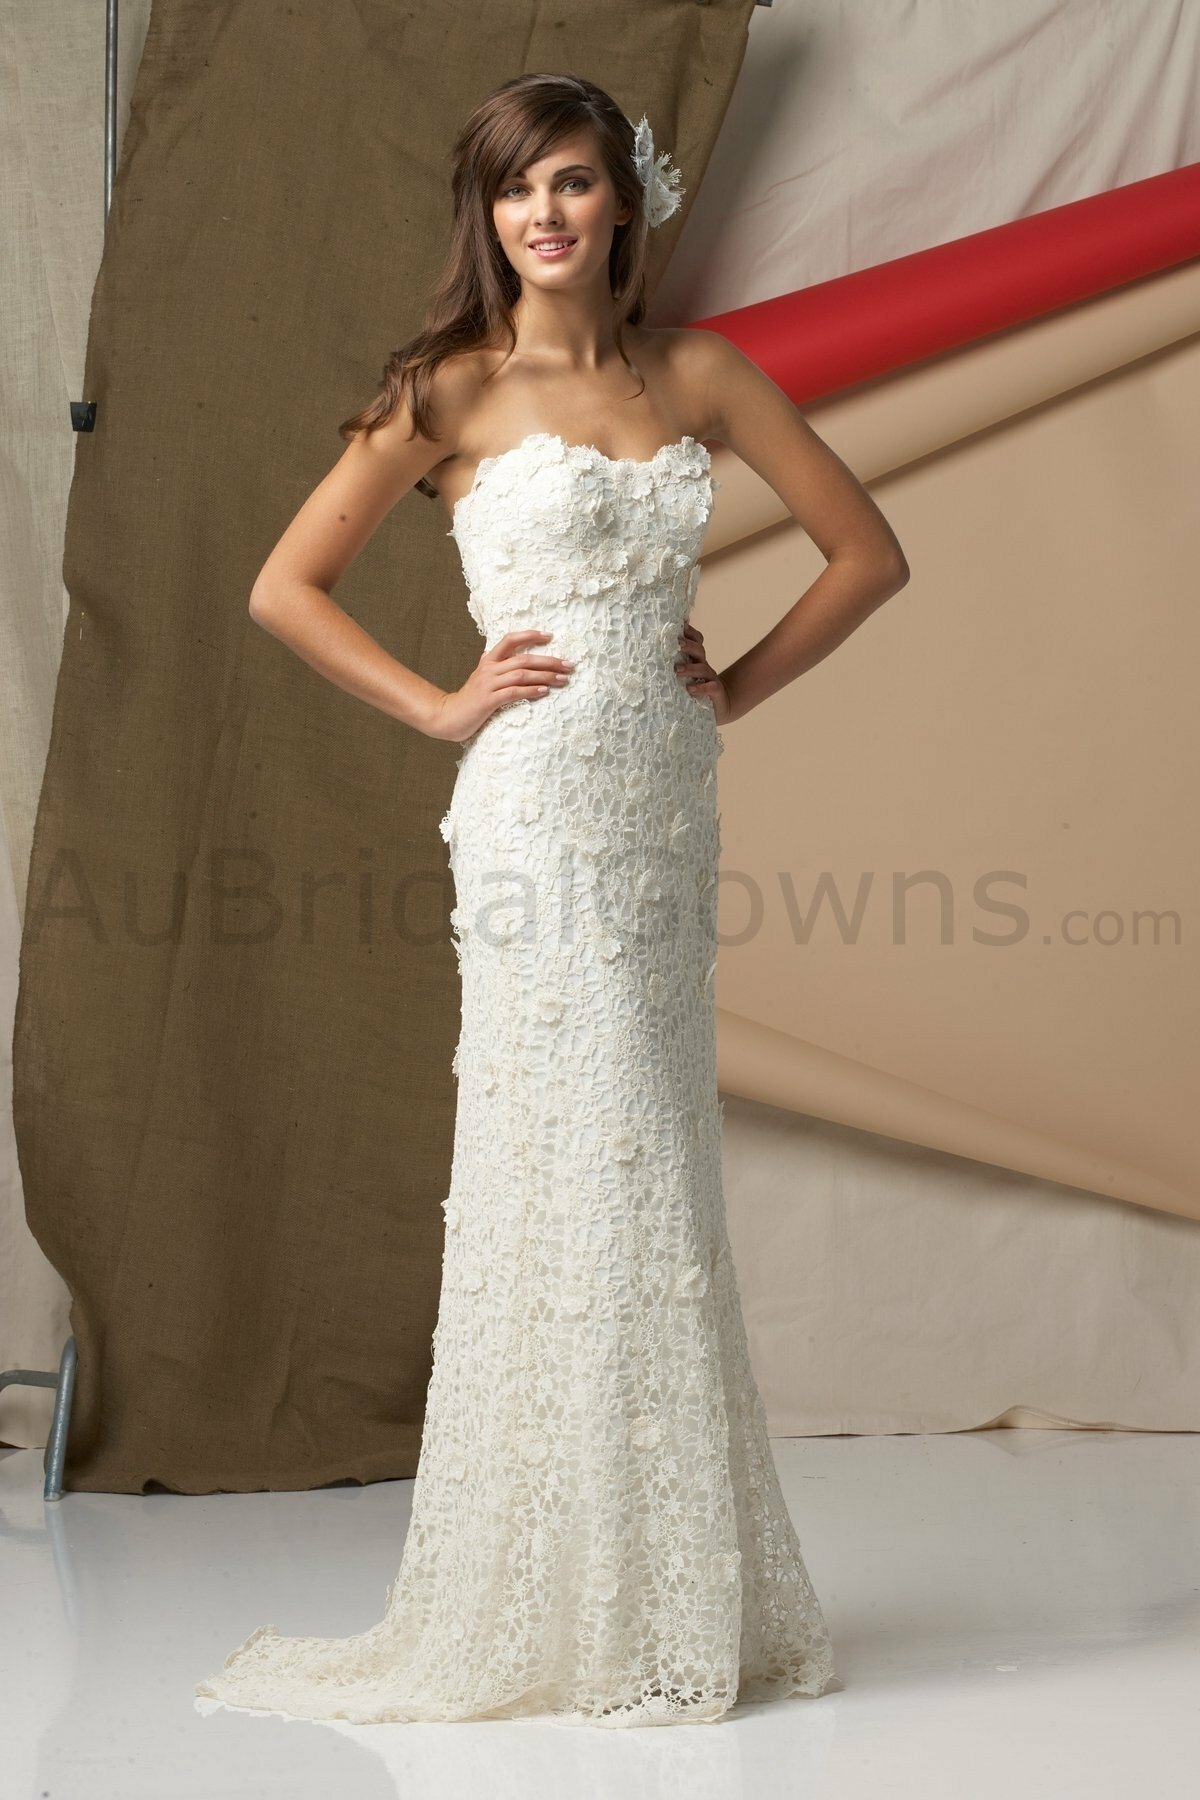 Cotton lace wedding dresses photo - 4